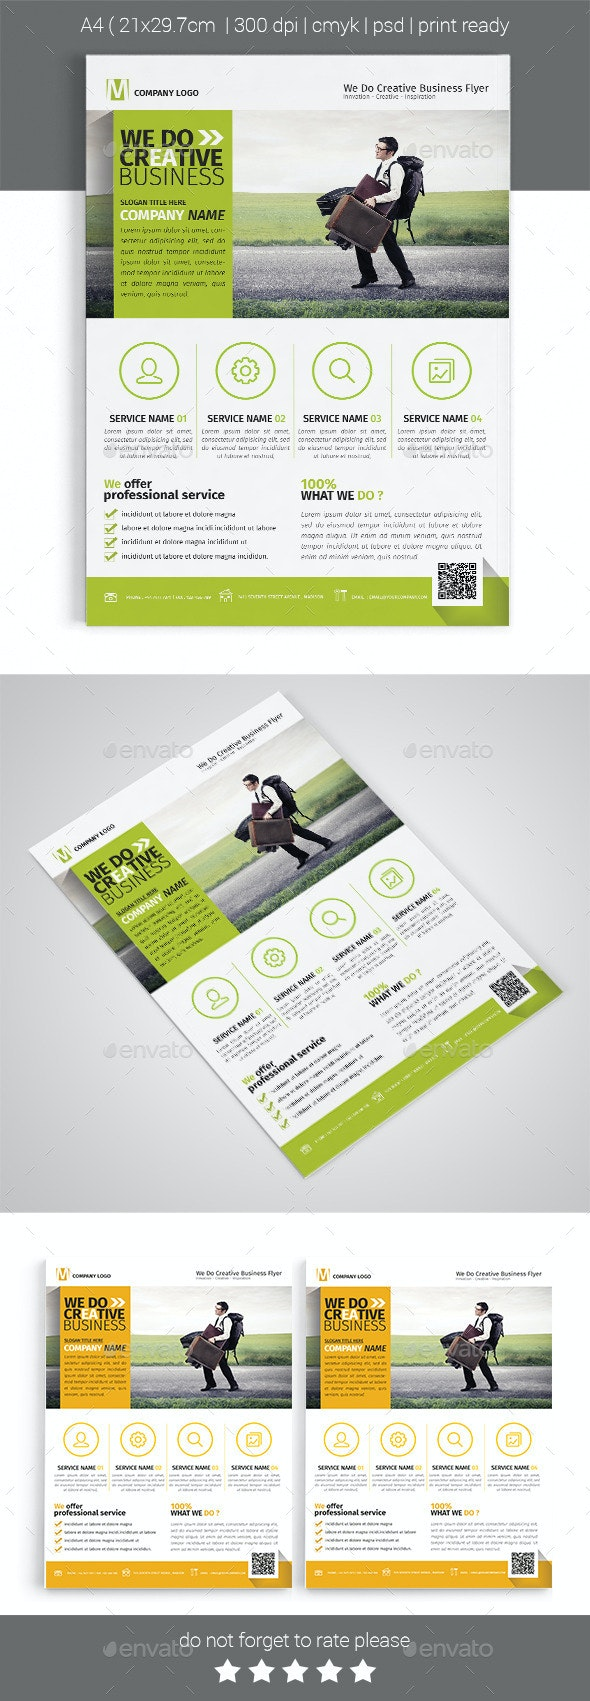 A4 Corporate Business Flyer Template Vol 02 - Corporate Flyers